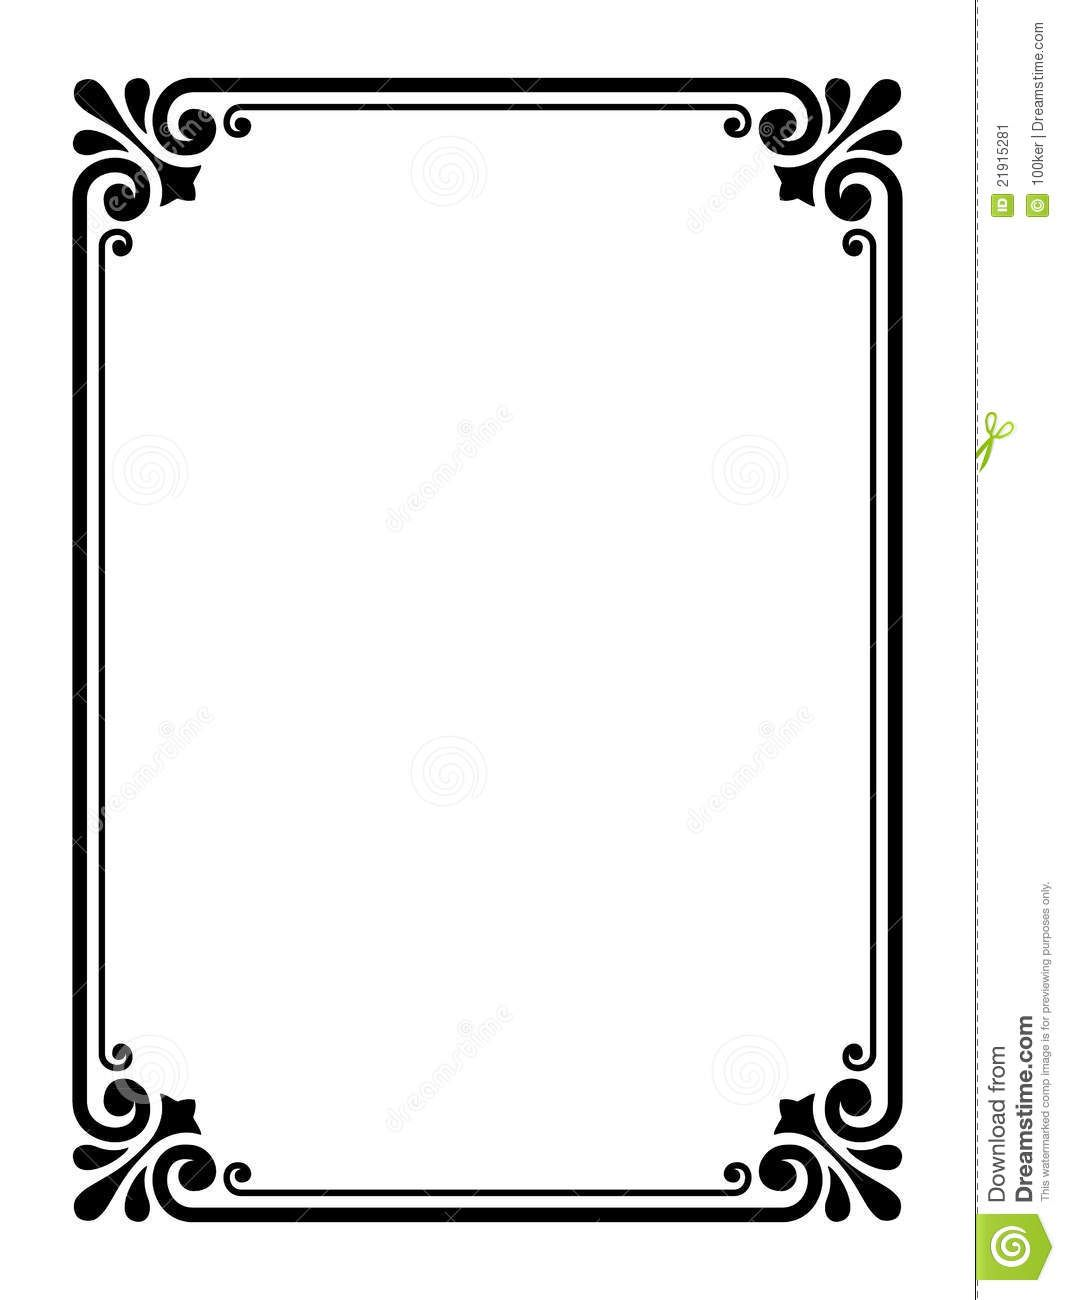 simple frame clipart - clipart kid | house ideas | pinterest